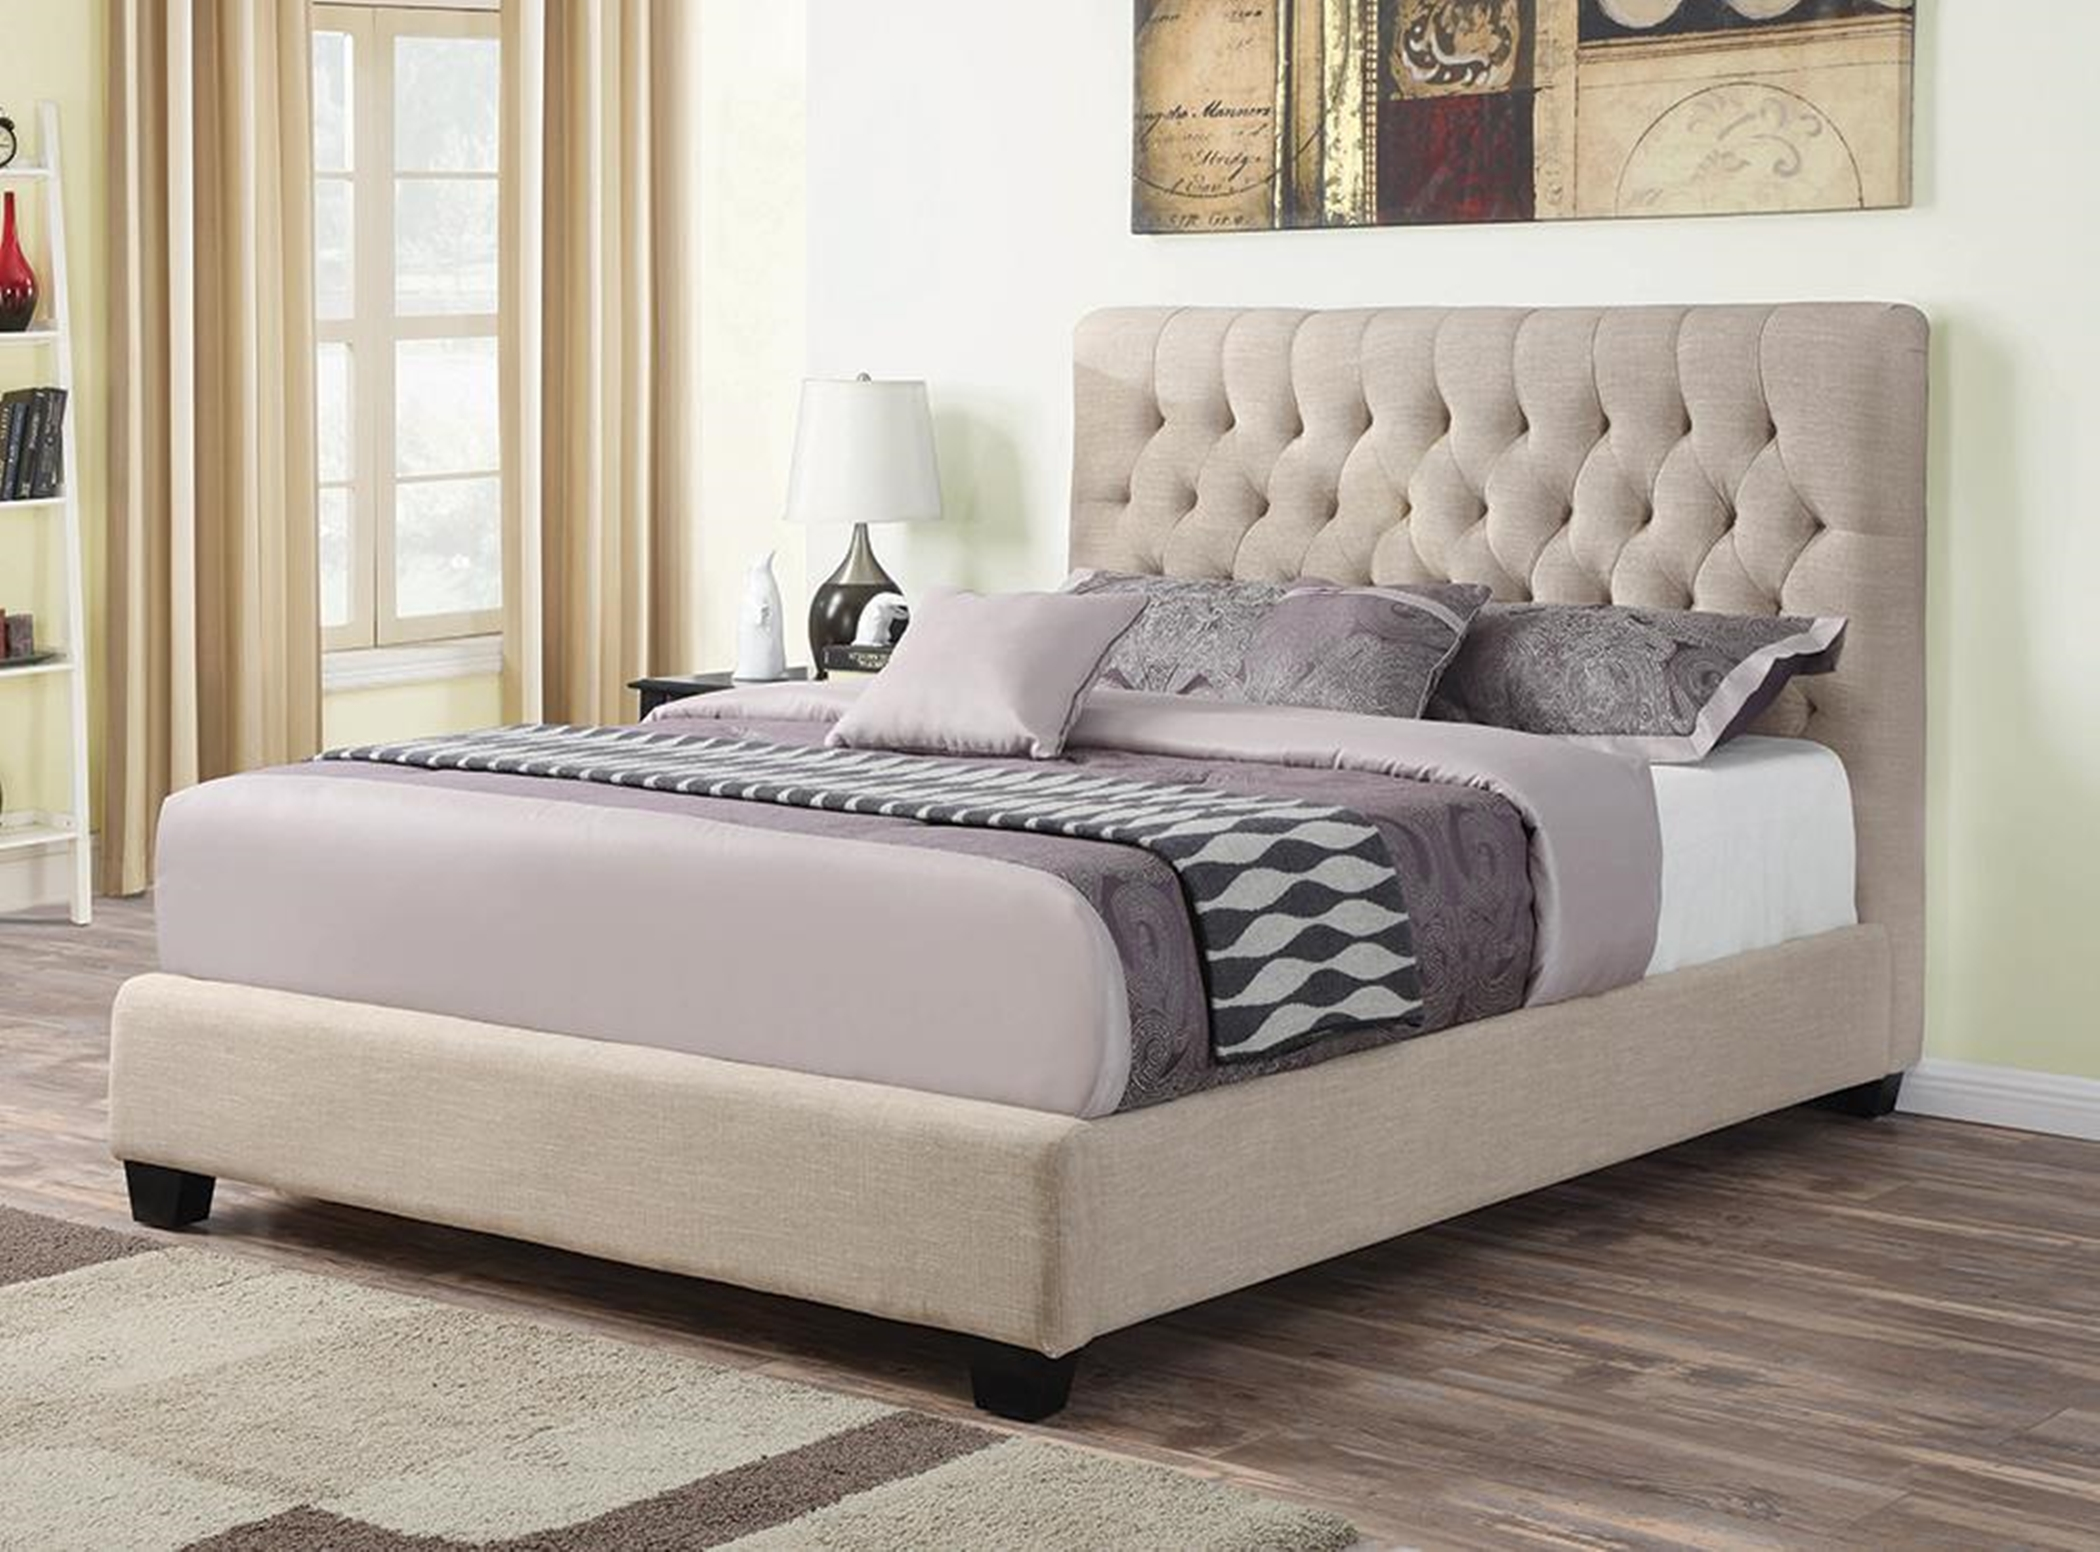 Chloe Oatmeal Upholstered Cal. King Bed